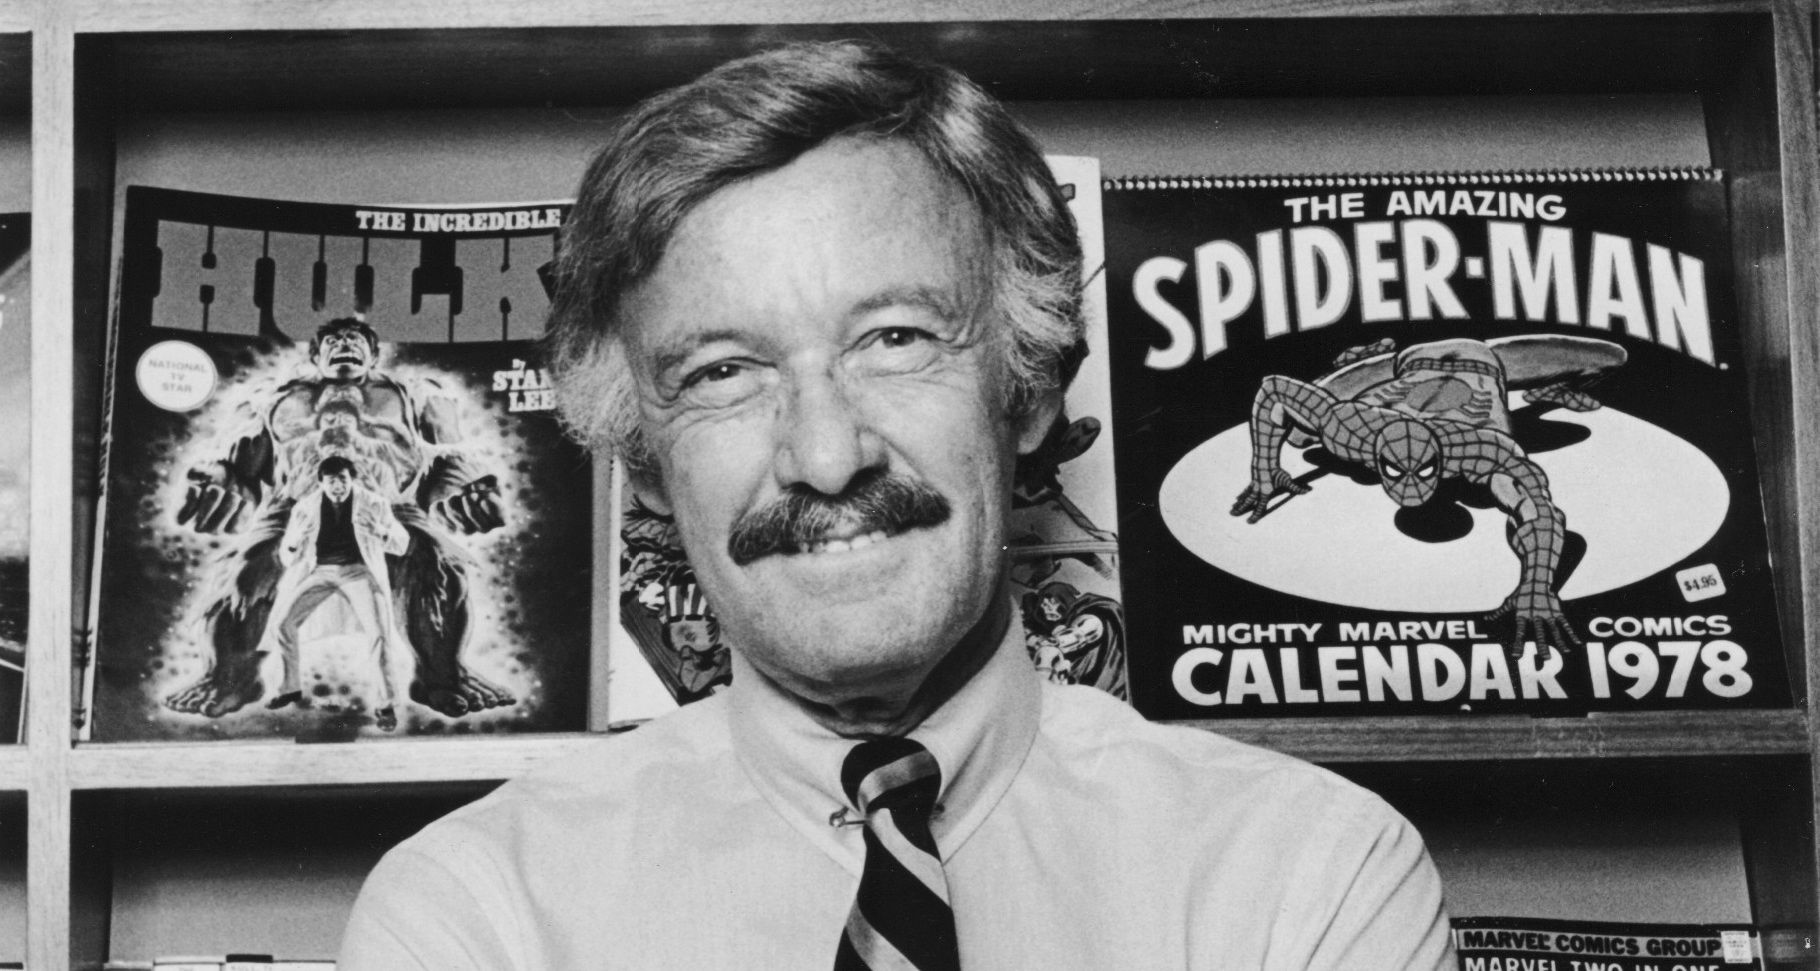 esquire.com - Matt Miller - Stan Lee 1968 Racism Essay - Stan Lee's Powerful 1968 Essay About the Evils of Racism Is Still Necessary Today